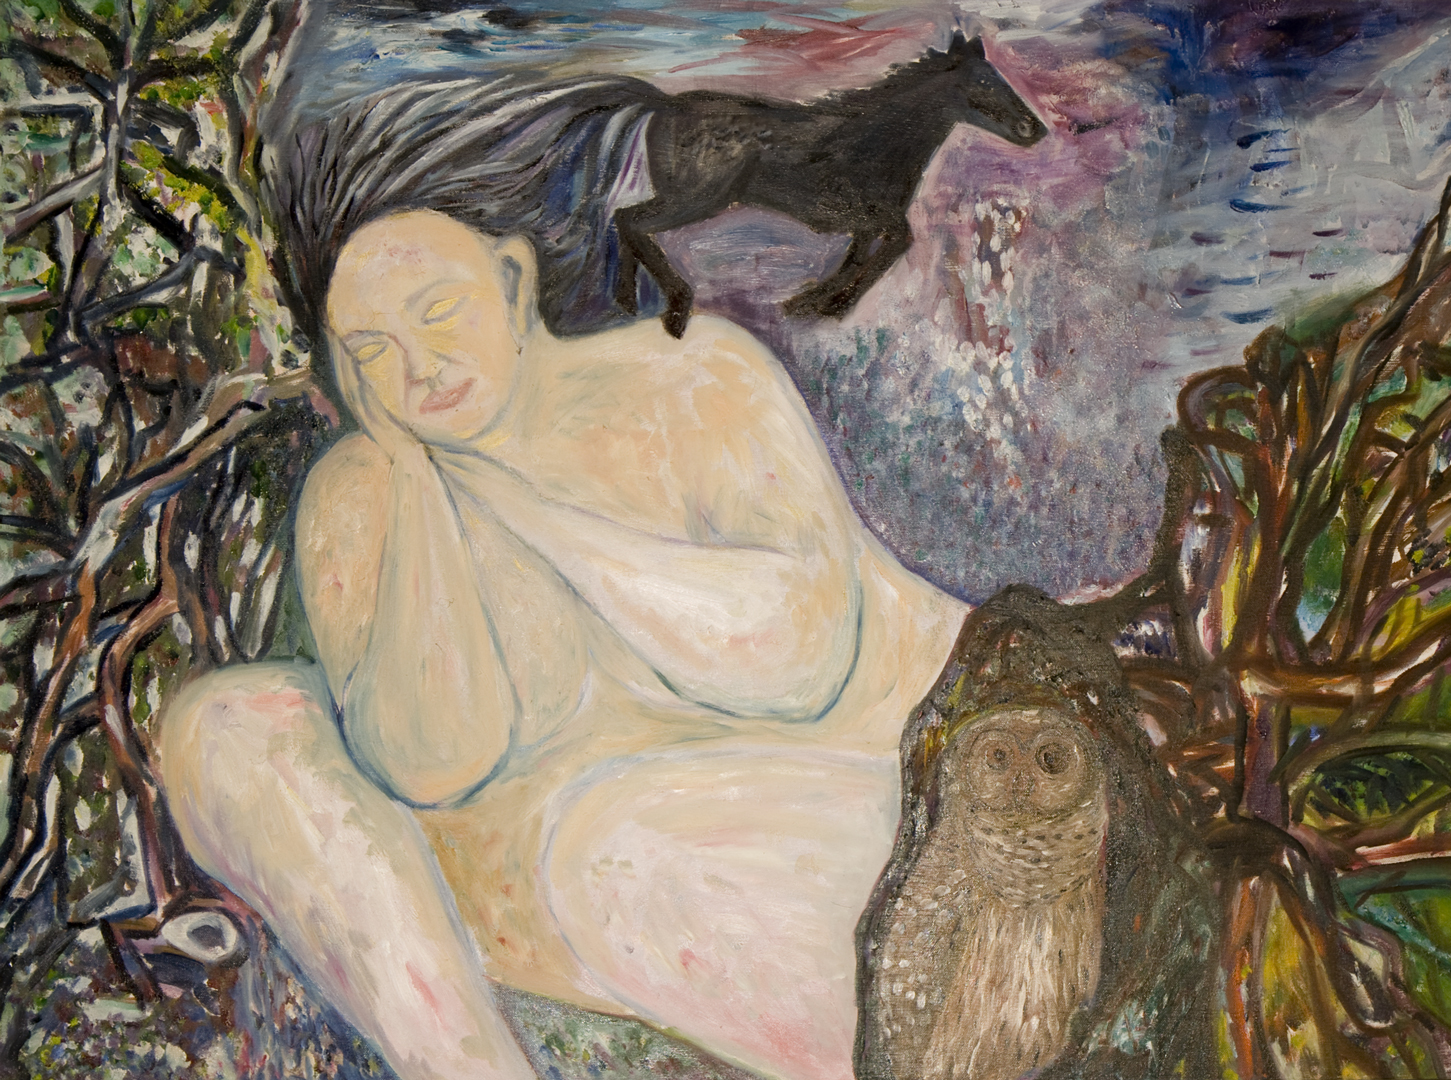 Old Woman Dreaming, oil, 2002